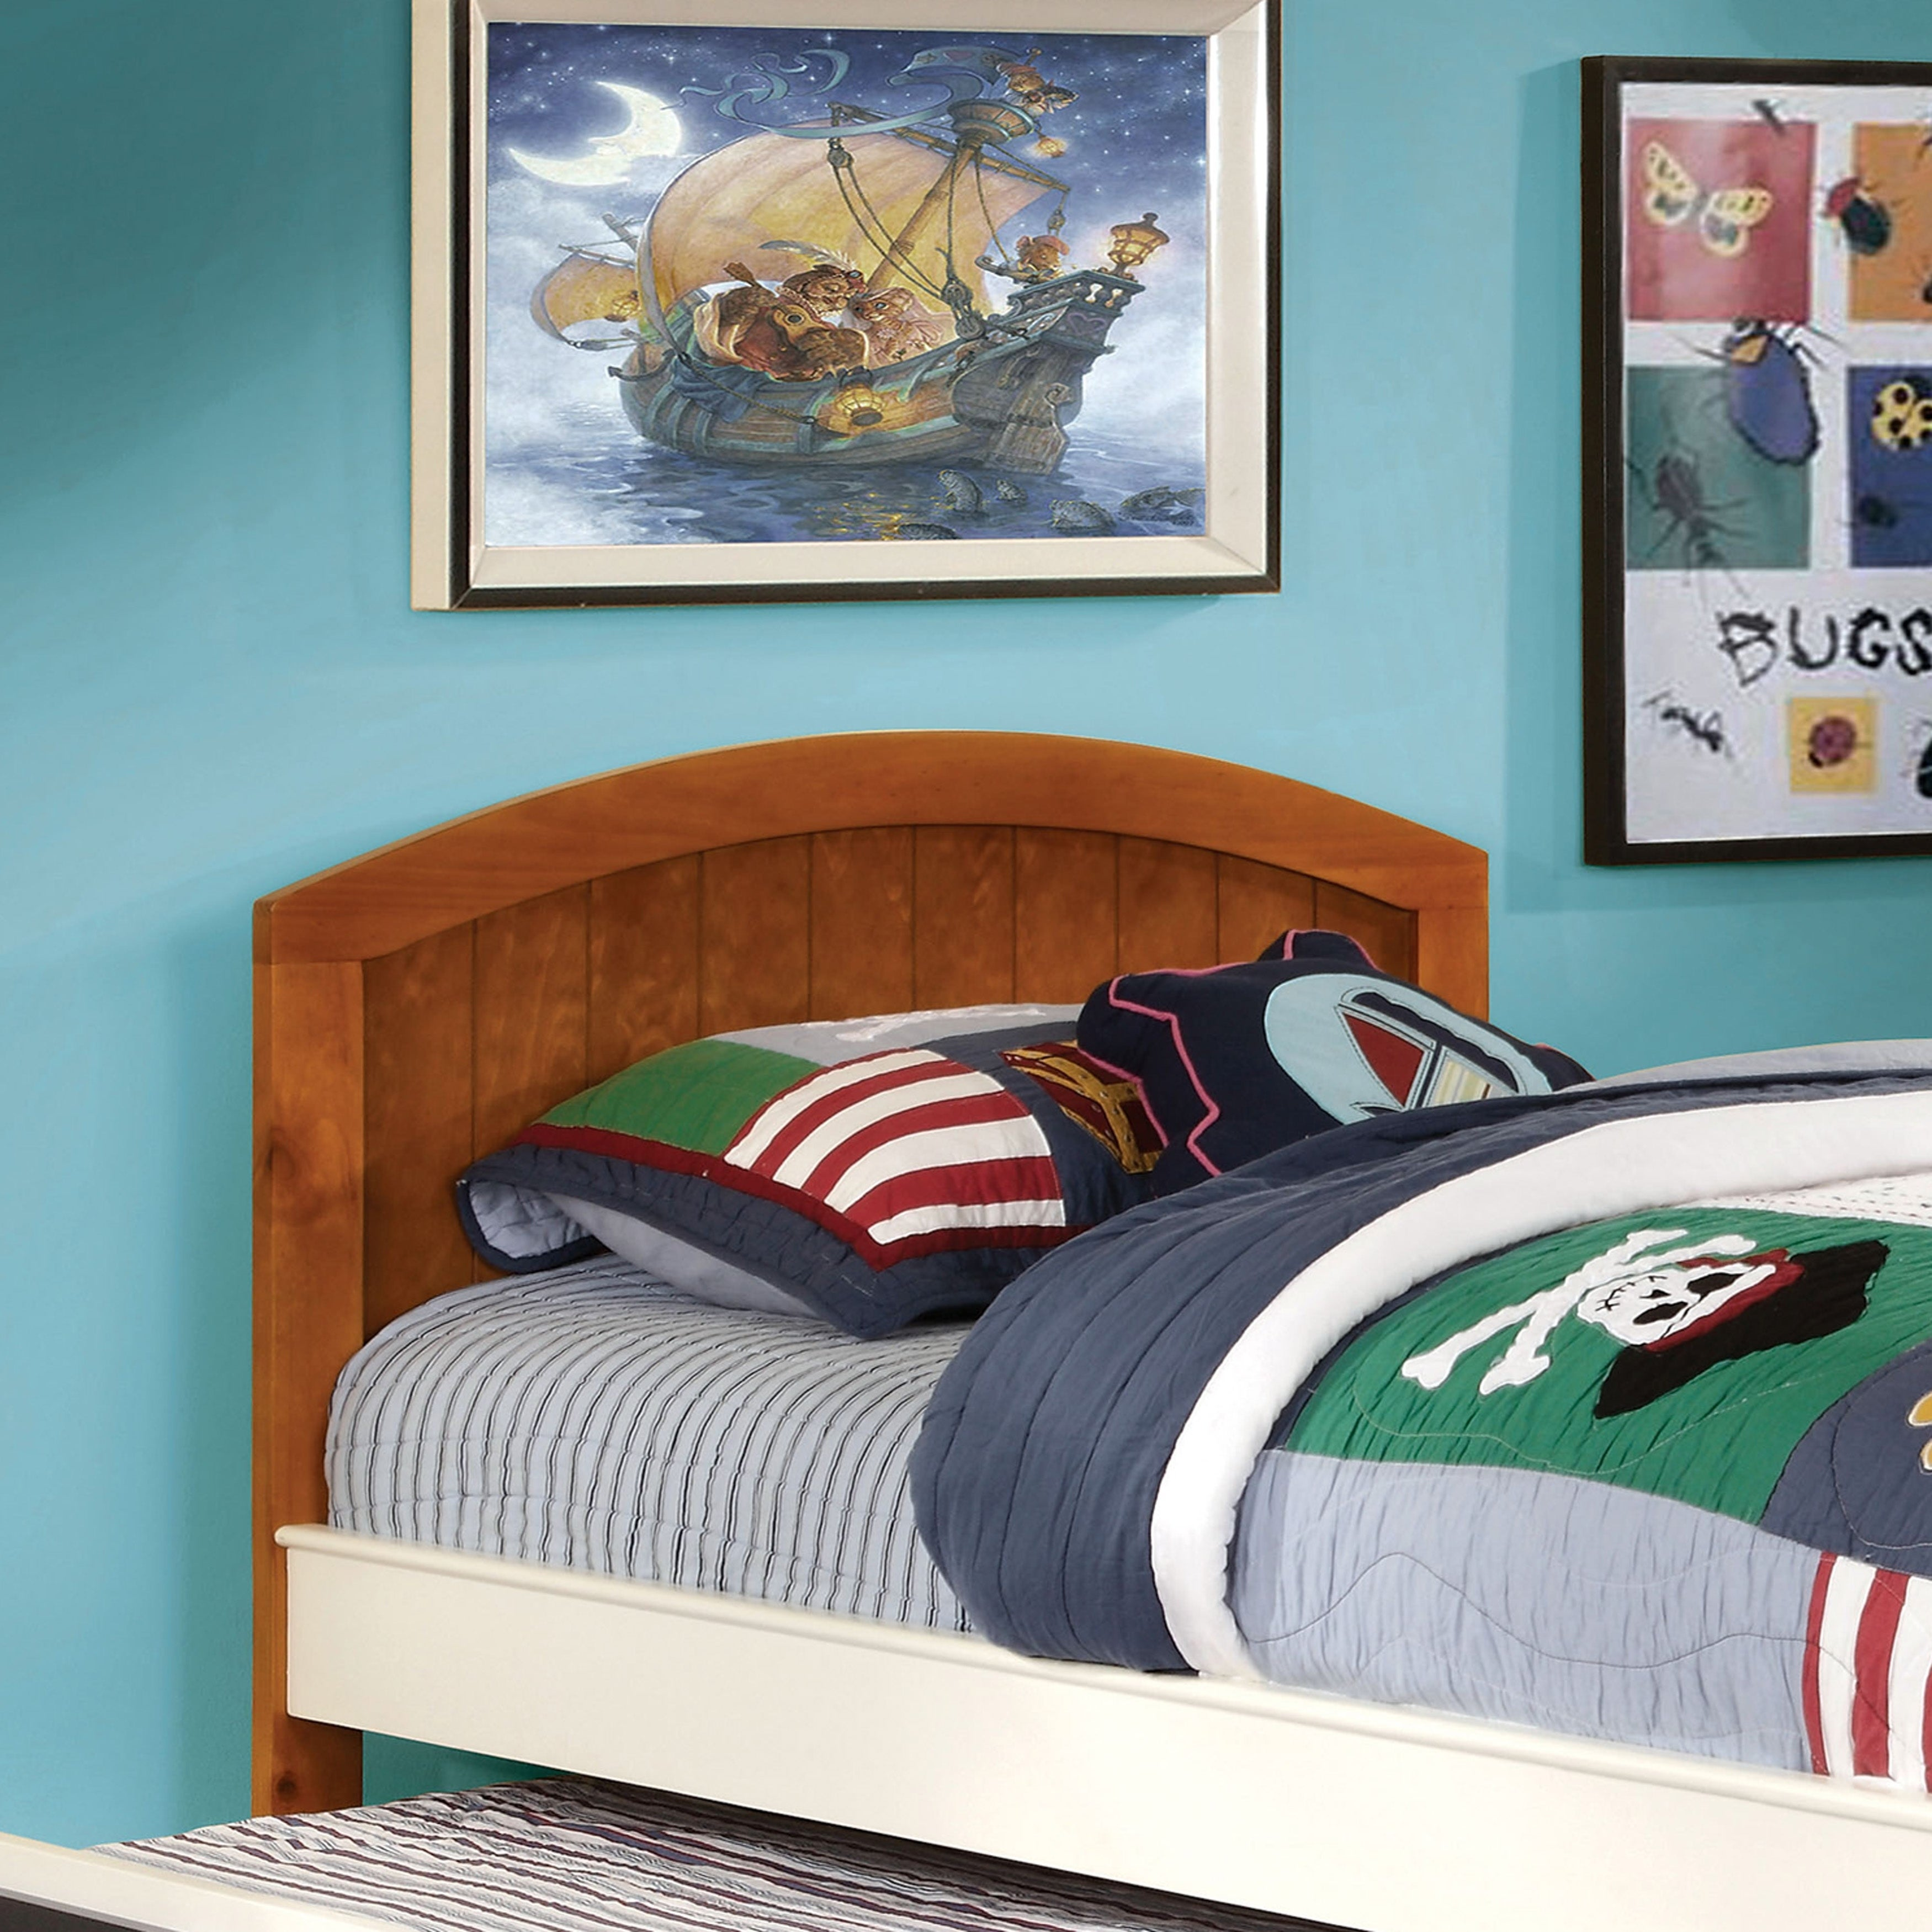 Shop Furniture Of America Capitaine Boat Twin Bed With Trundle And